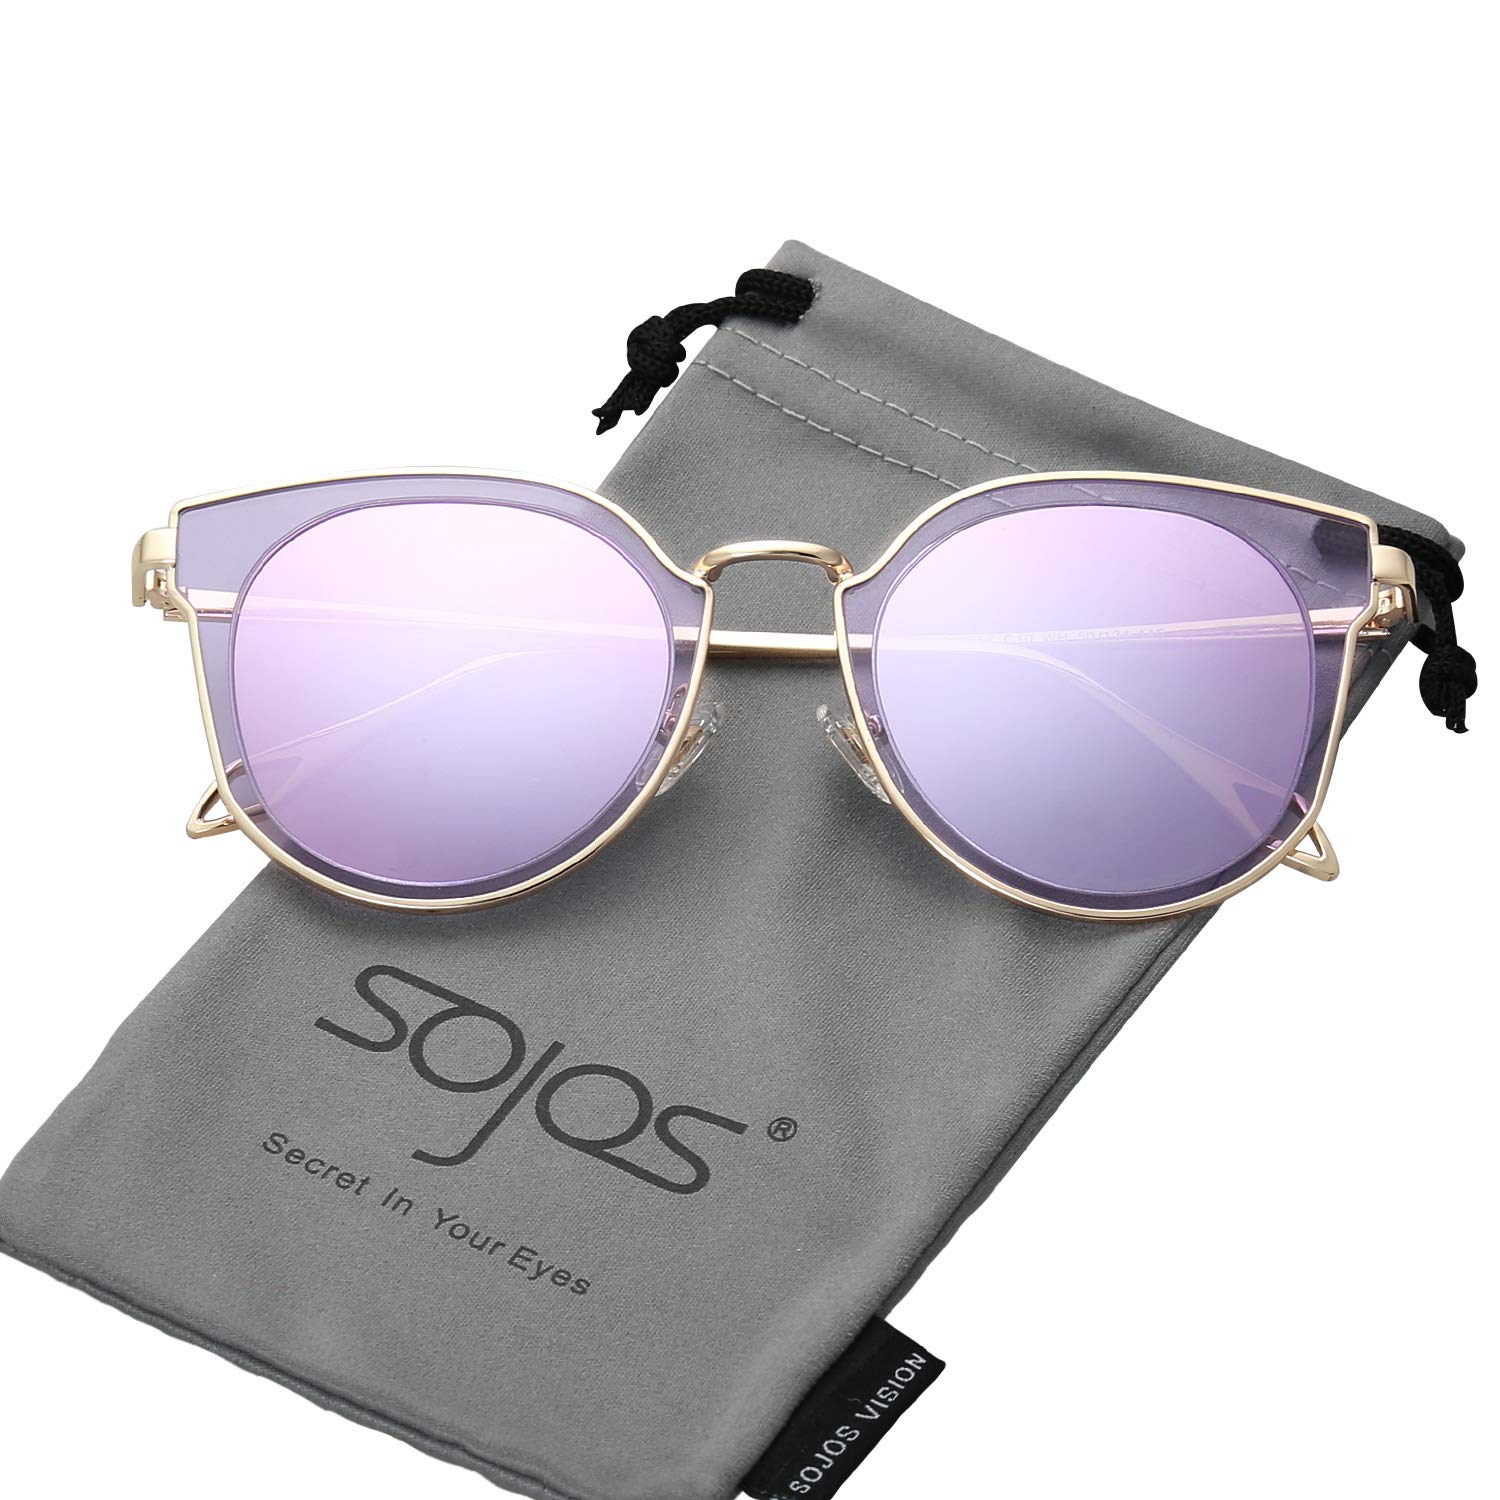 9fd1e2586876 Amazon.com  SOJOS Fashion Polarized Sunglasses for Women UV400 Mirrored  Lens SJ1057 with Gold Frame Purple Mirrored Lens  Clothing